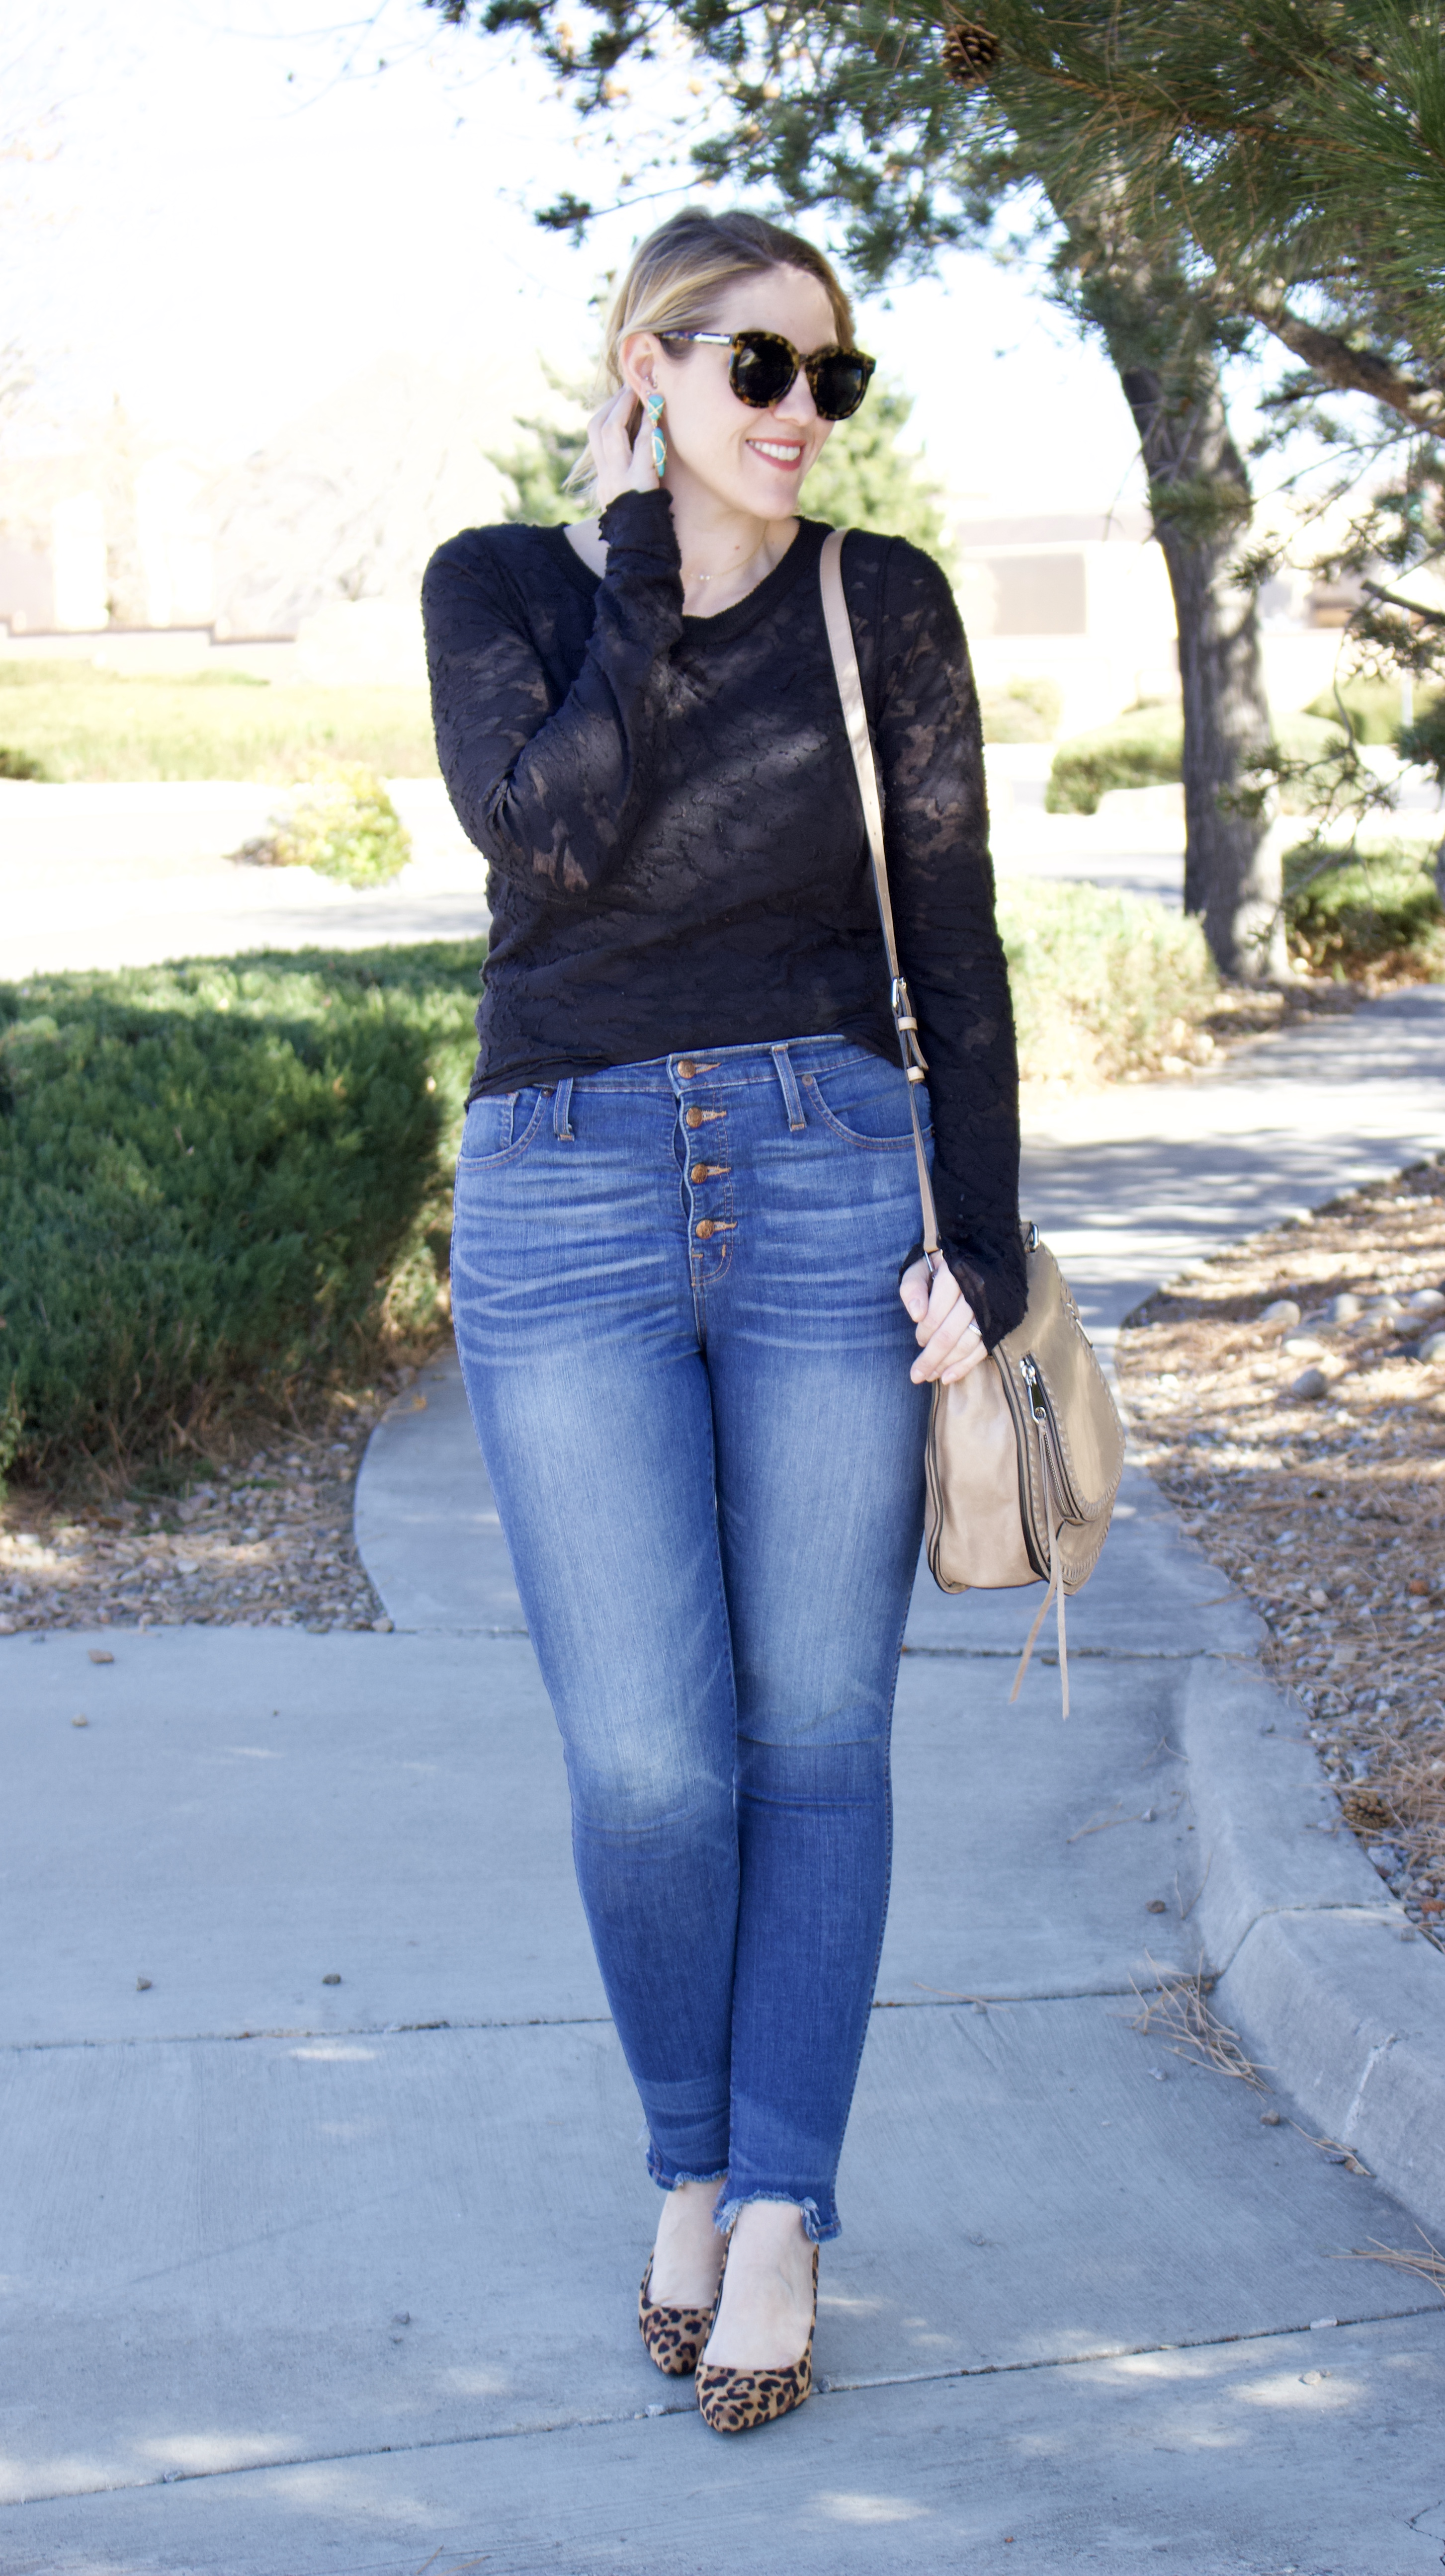 high waisted jeans for date night #highwaistedjeans #madewell #datenightoutfit